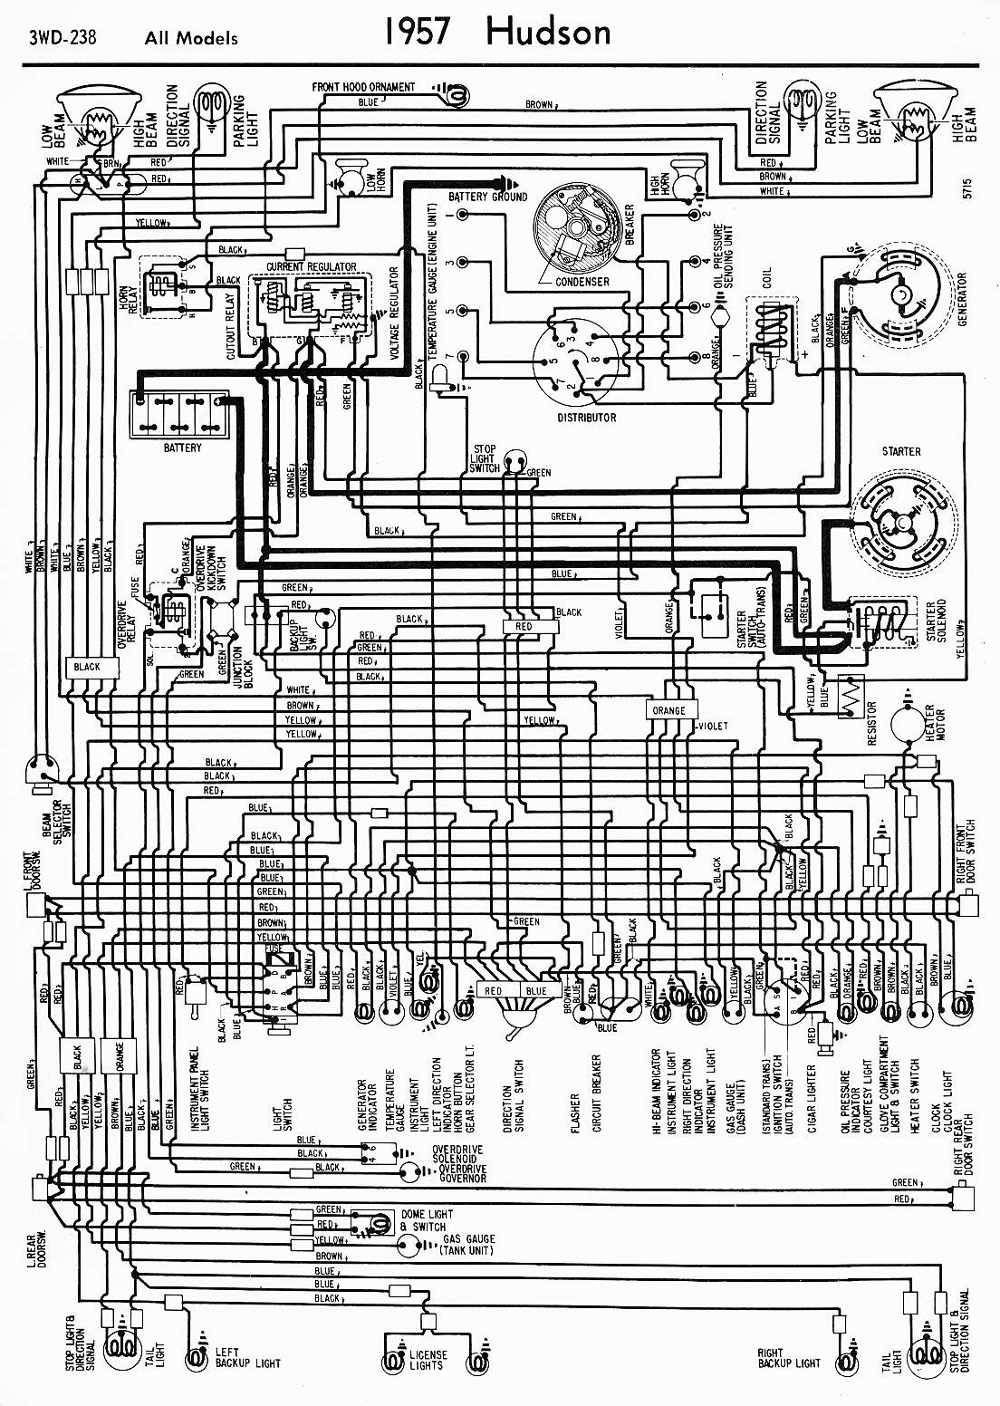 1954 Hudson Wiring Harness Diagrams Explorer Guitar Car Manuals Pdf Fault Codes Connectors